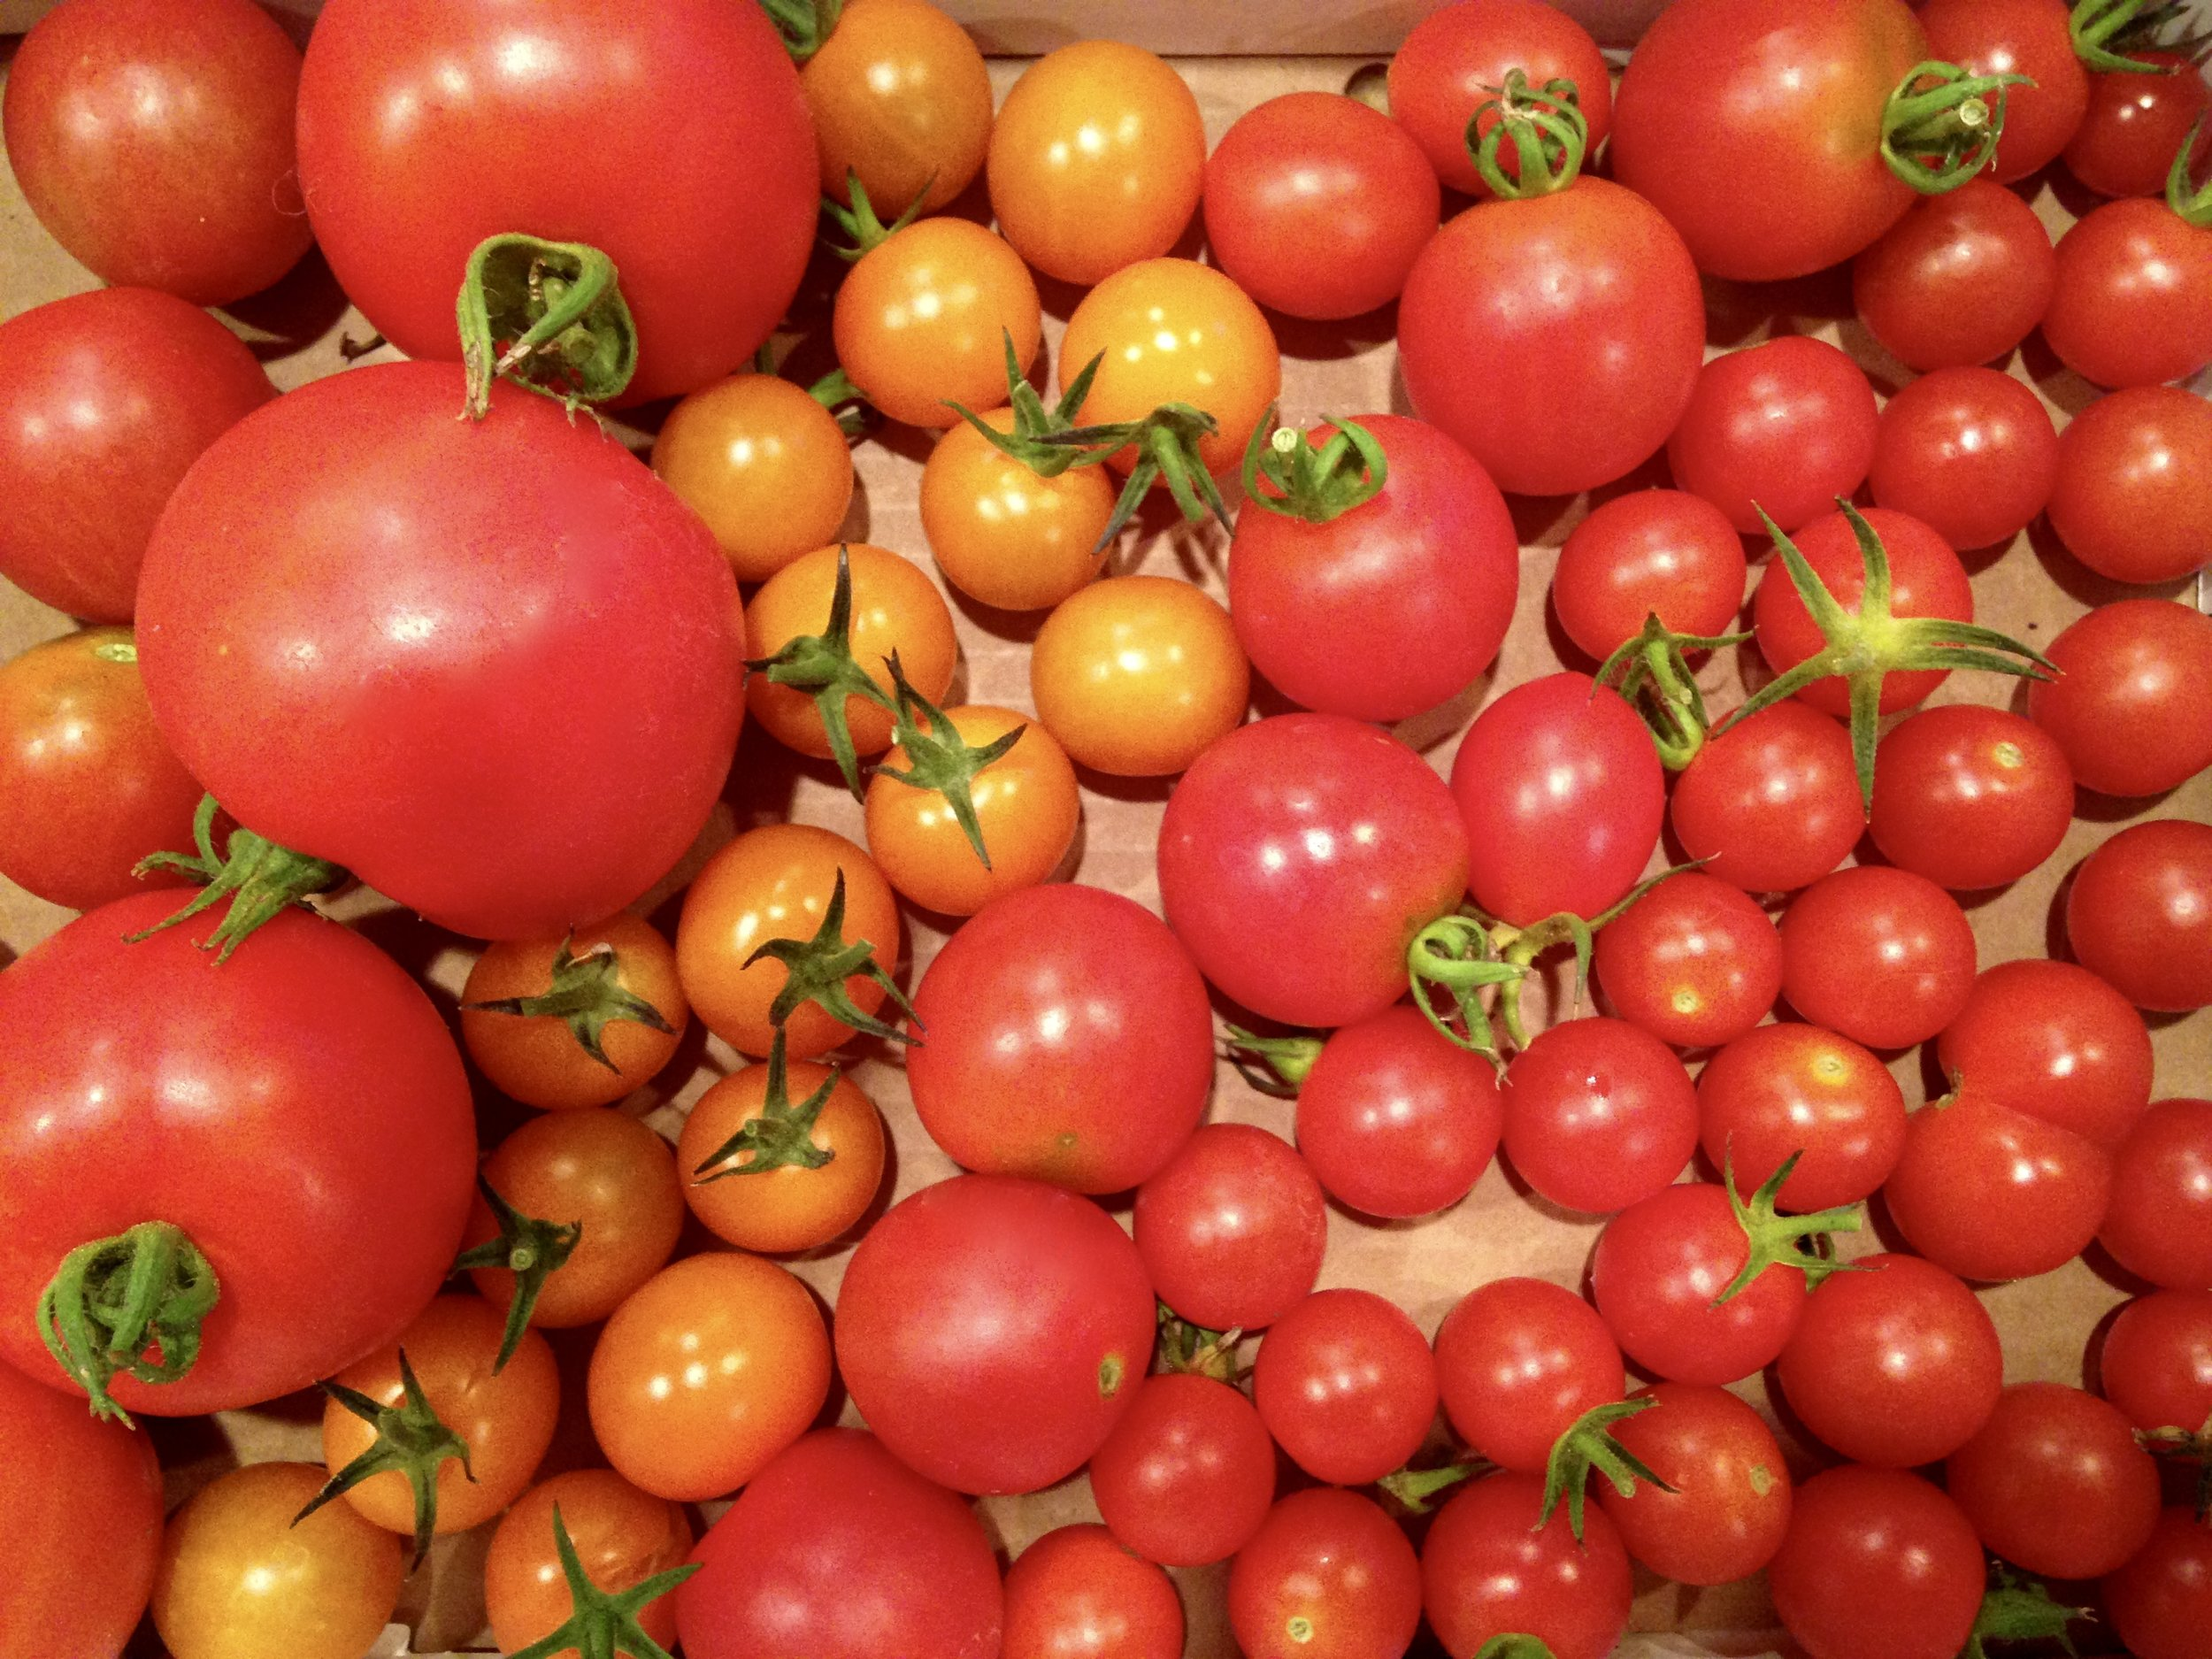 Don't be afraid to experiment with different types of tomatoes. Throw whatever in you can find, I promise it will taste good!